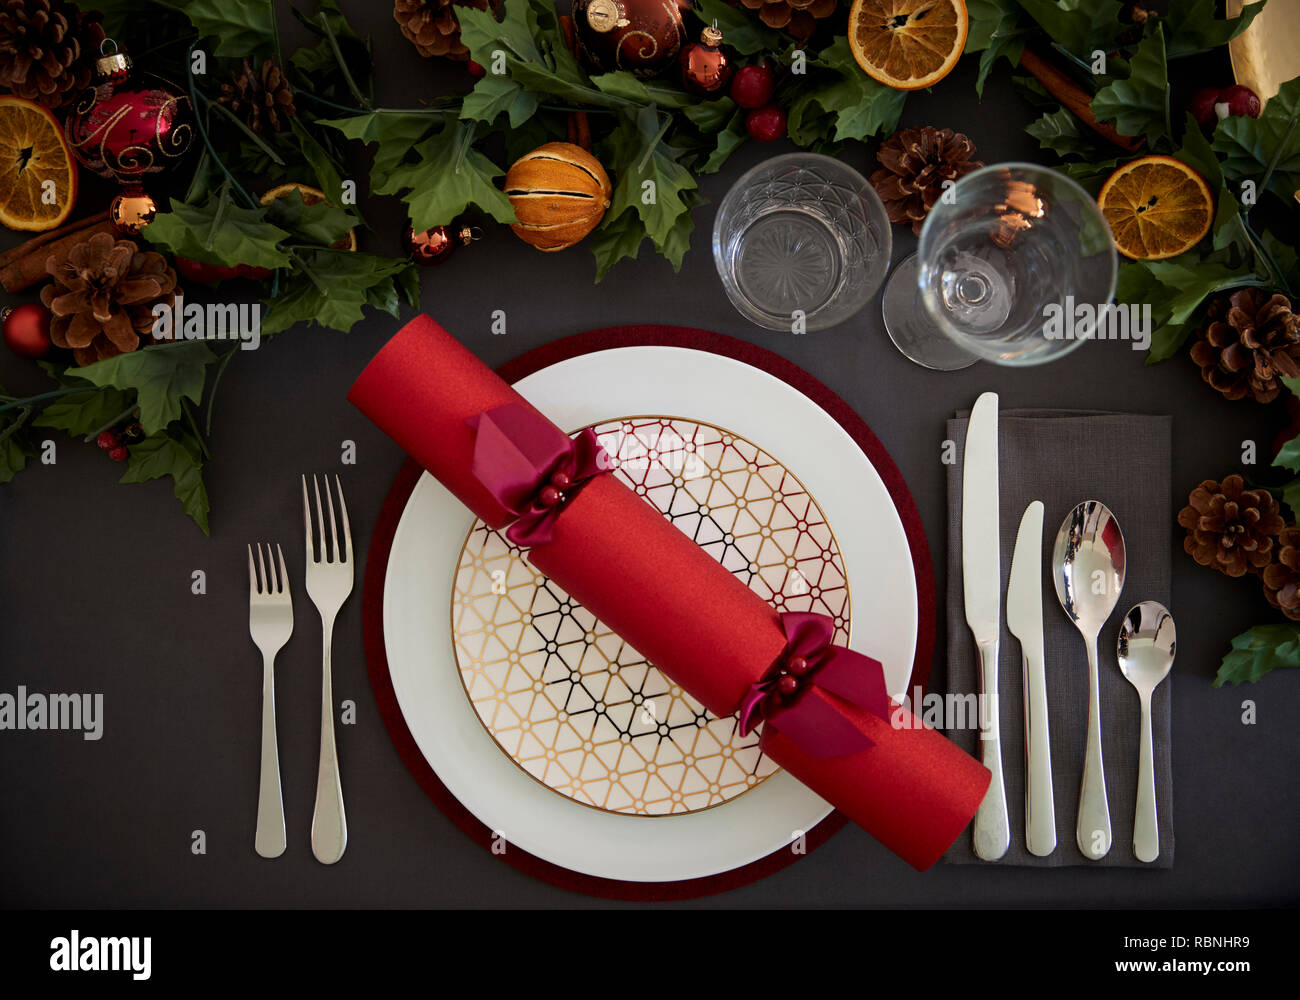 Christmas table setting with a red Christmas cracker arranged on a plate and green and red table decorations, overhead view Stock Photo